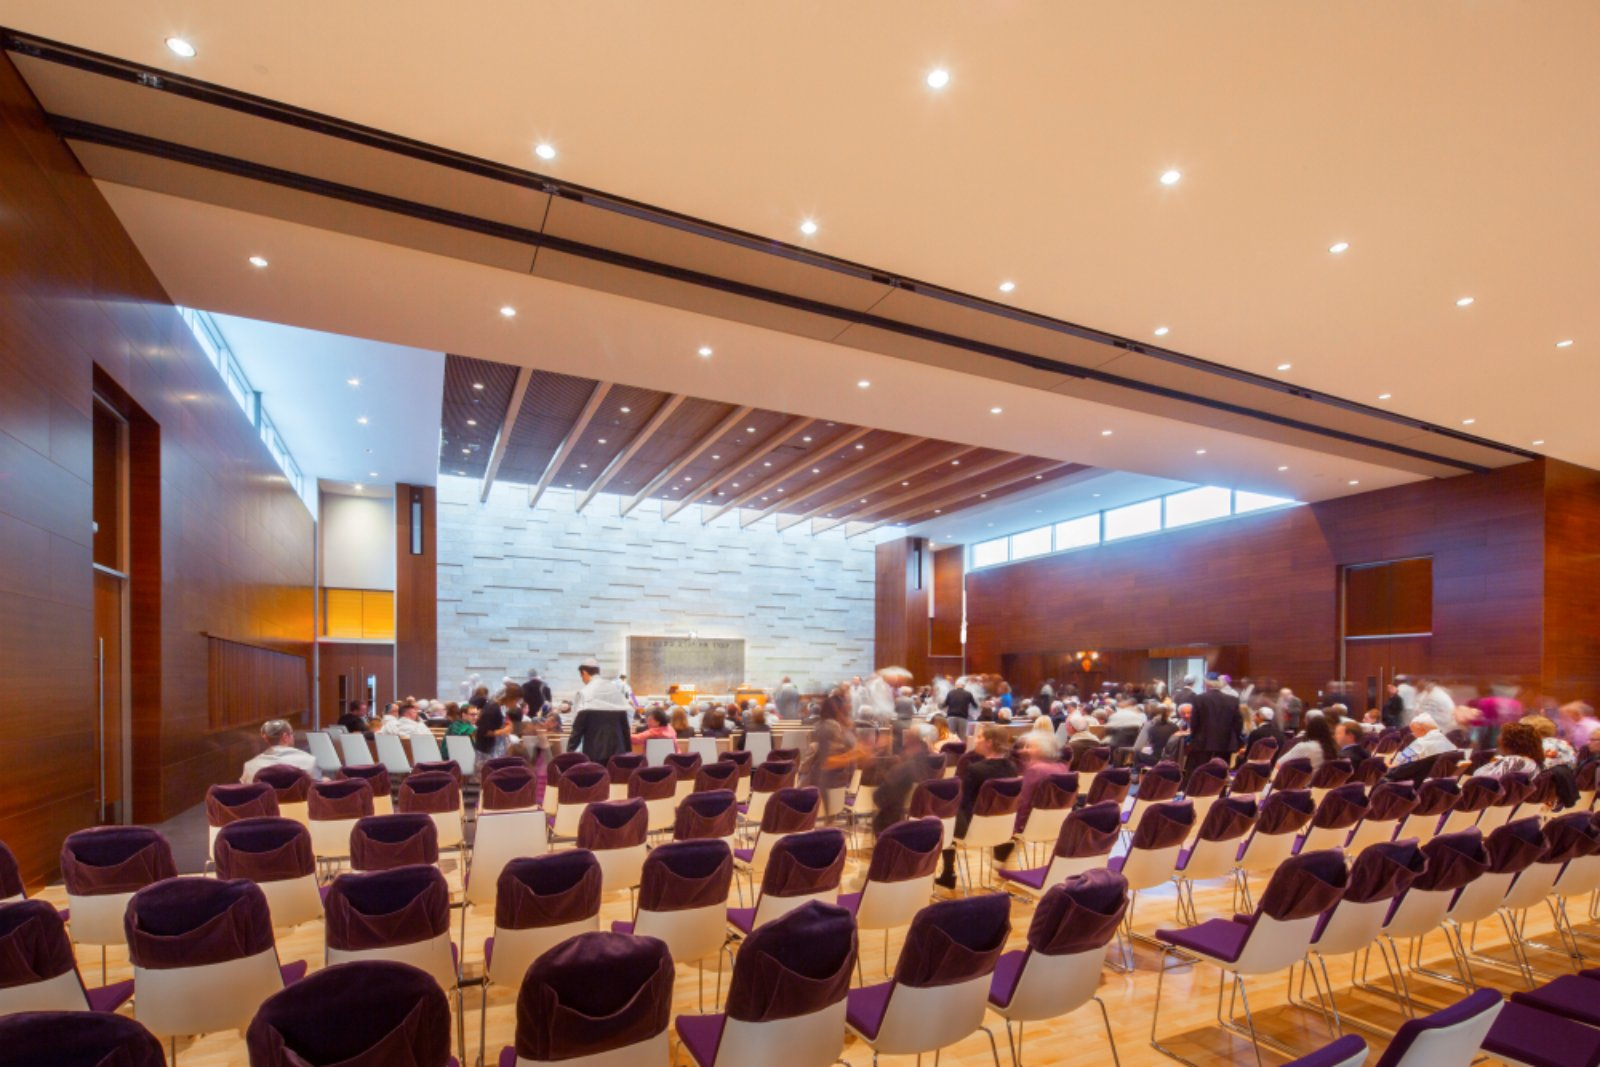 Congregation Beth Israel Synagogue By Acton Ostry